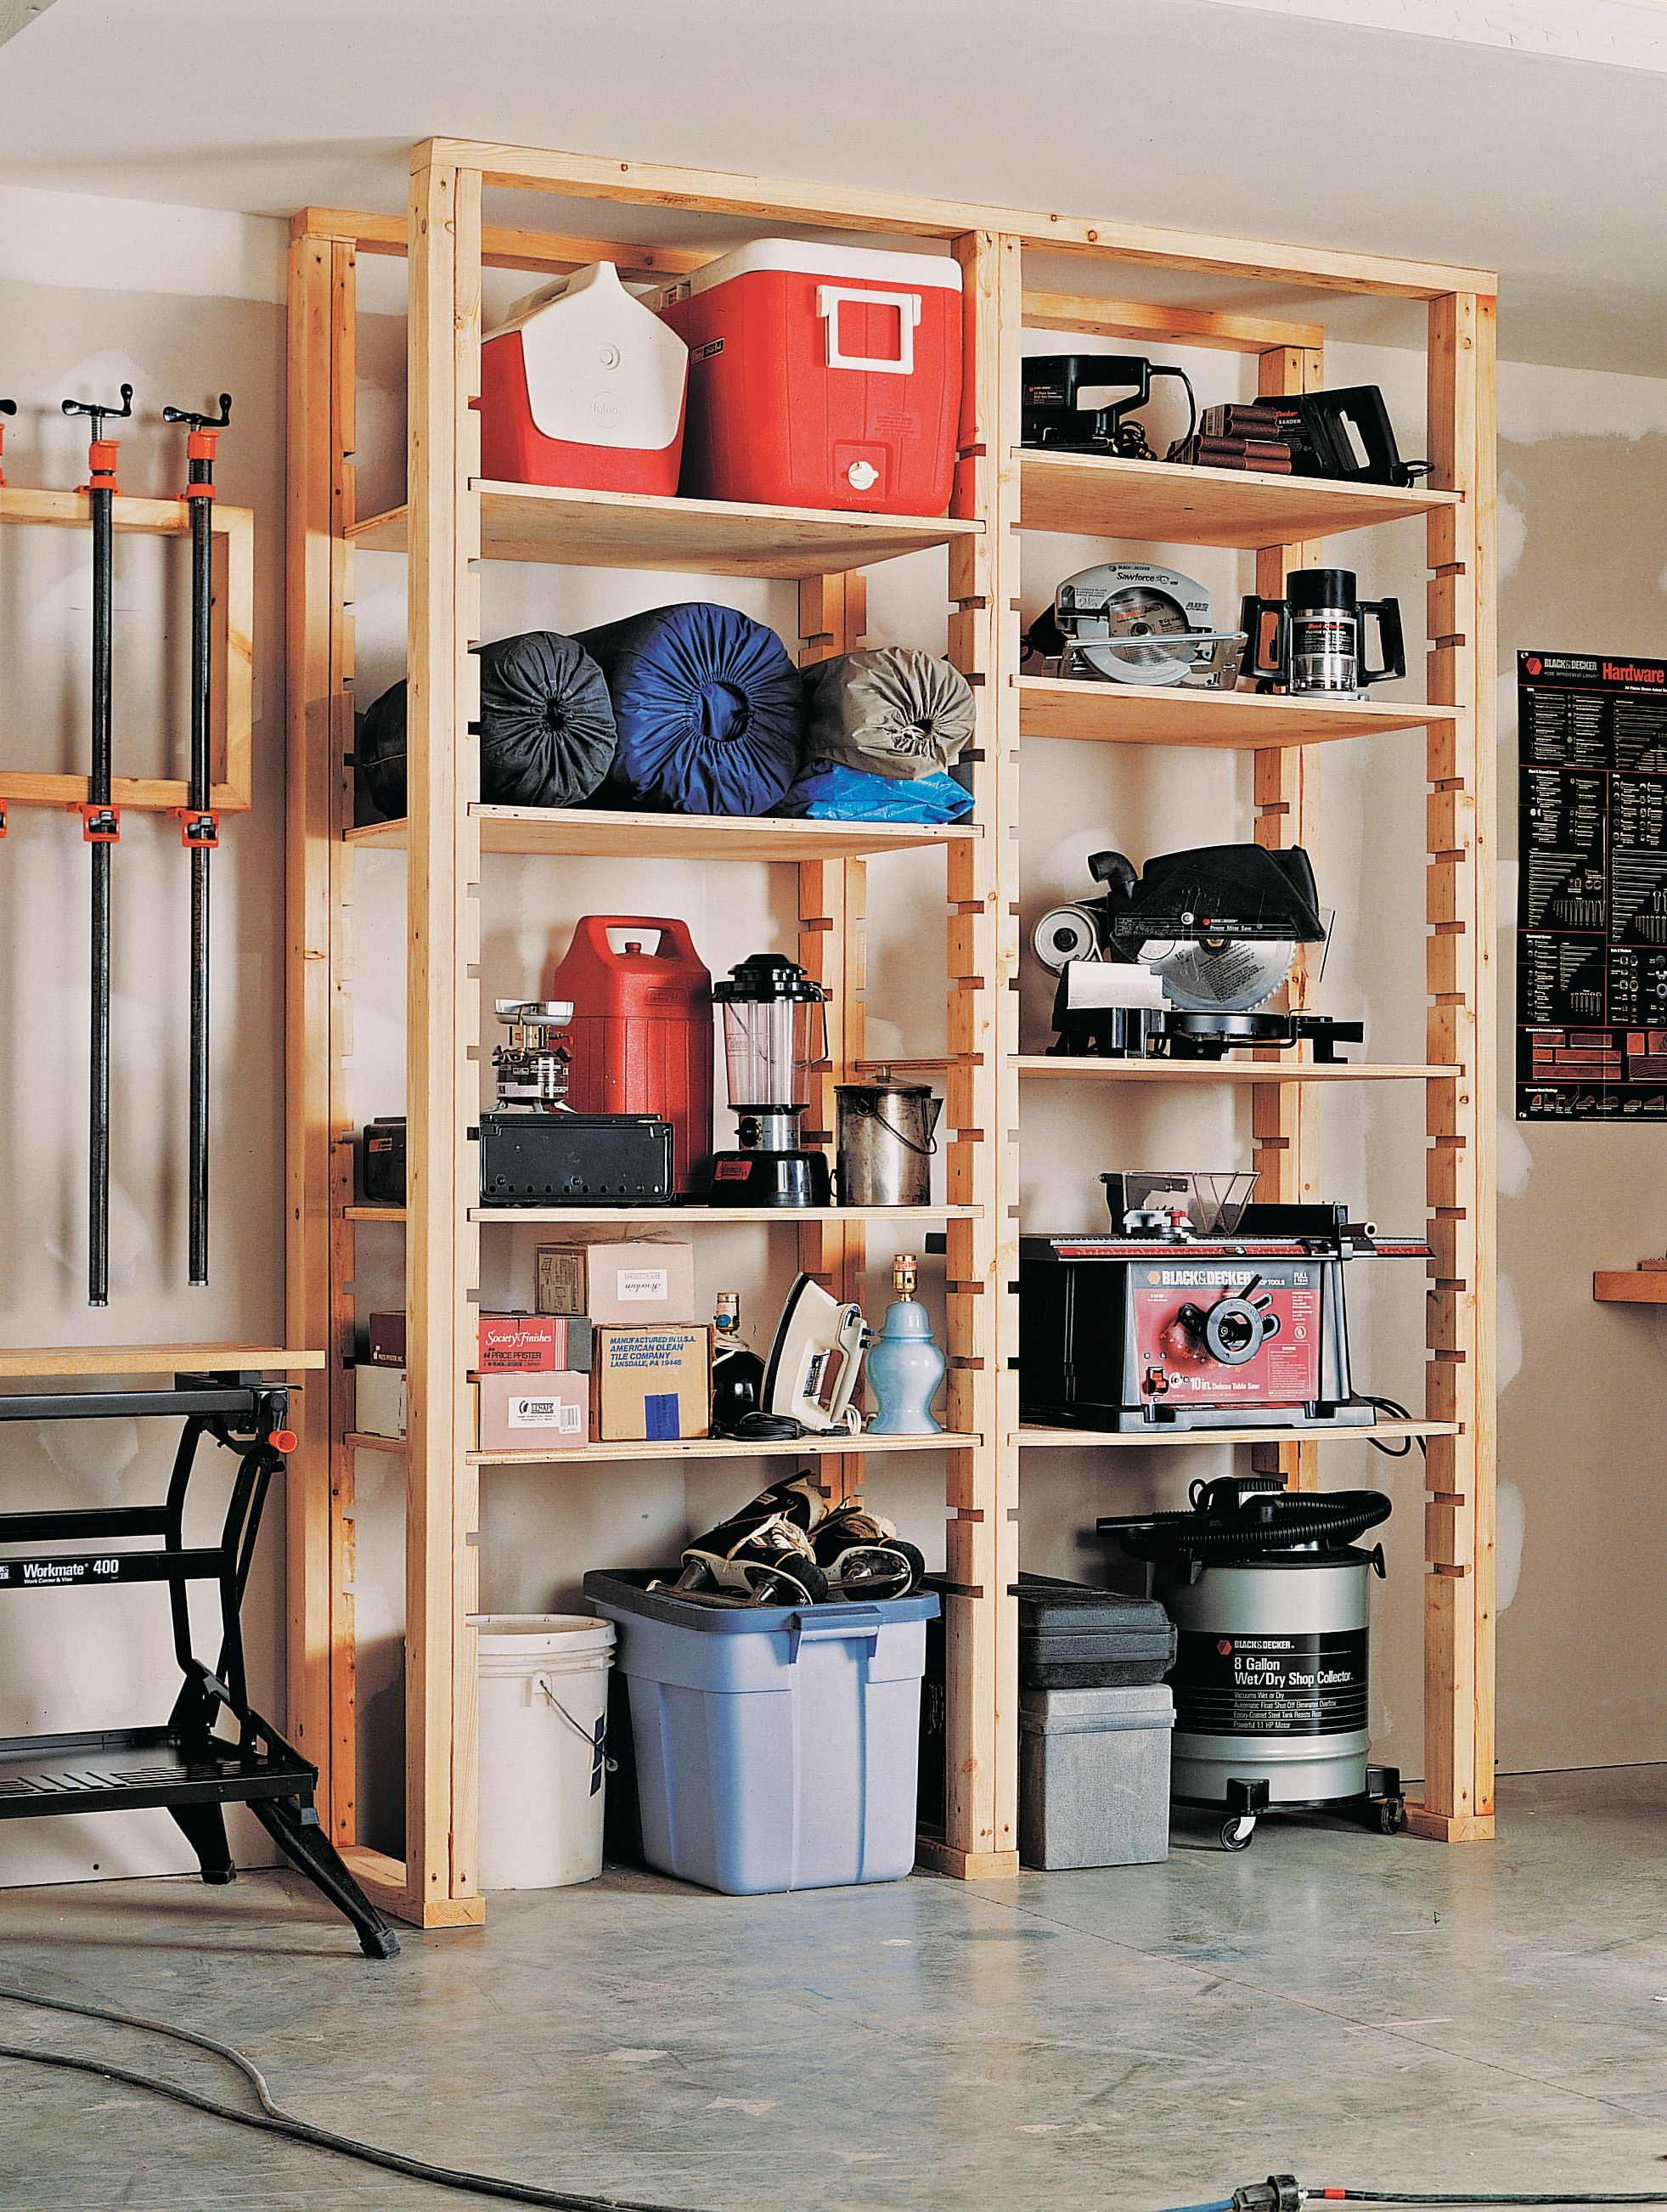 How to Install Utility Shelves